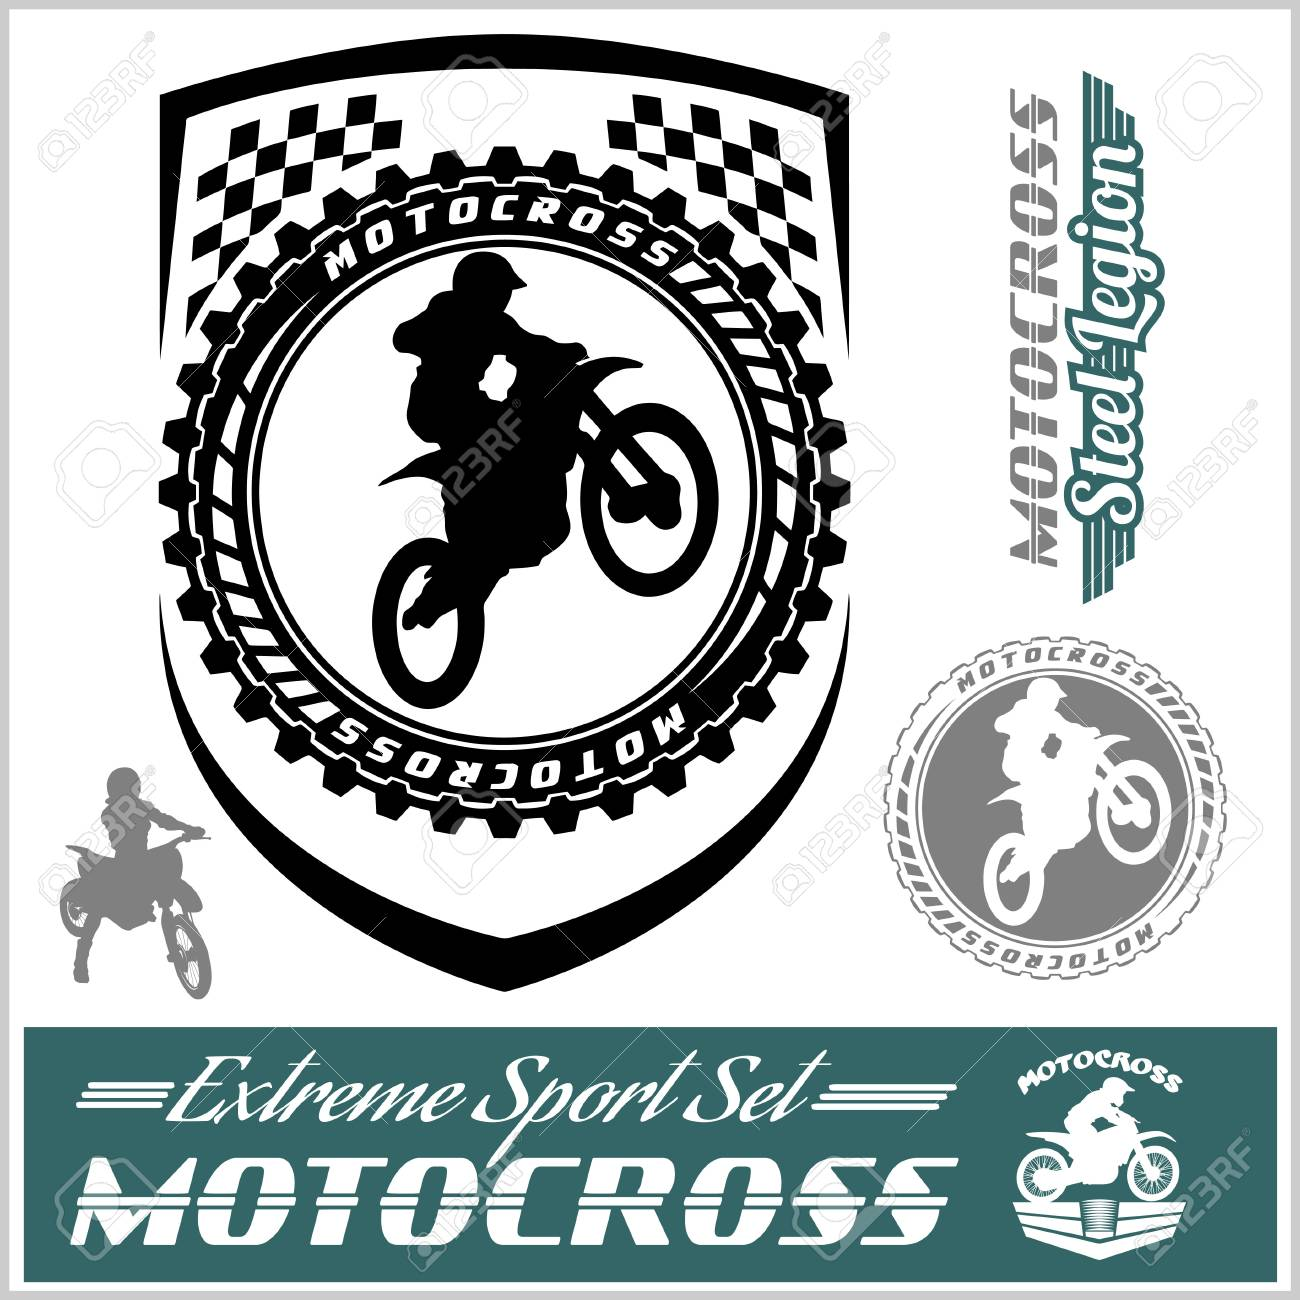 Motocross Track Logos And Badges Royalty Free Cliparts Vectors And Stock Illustration Image 85245012